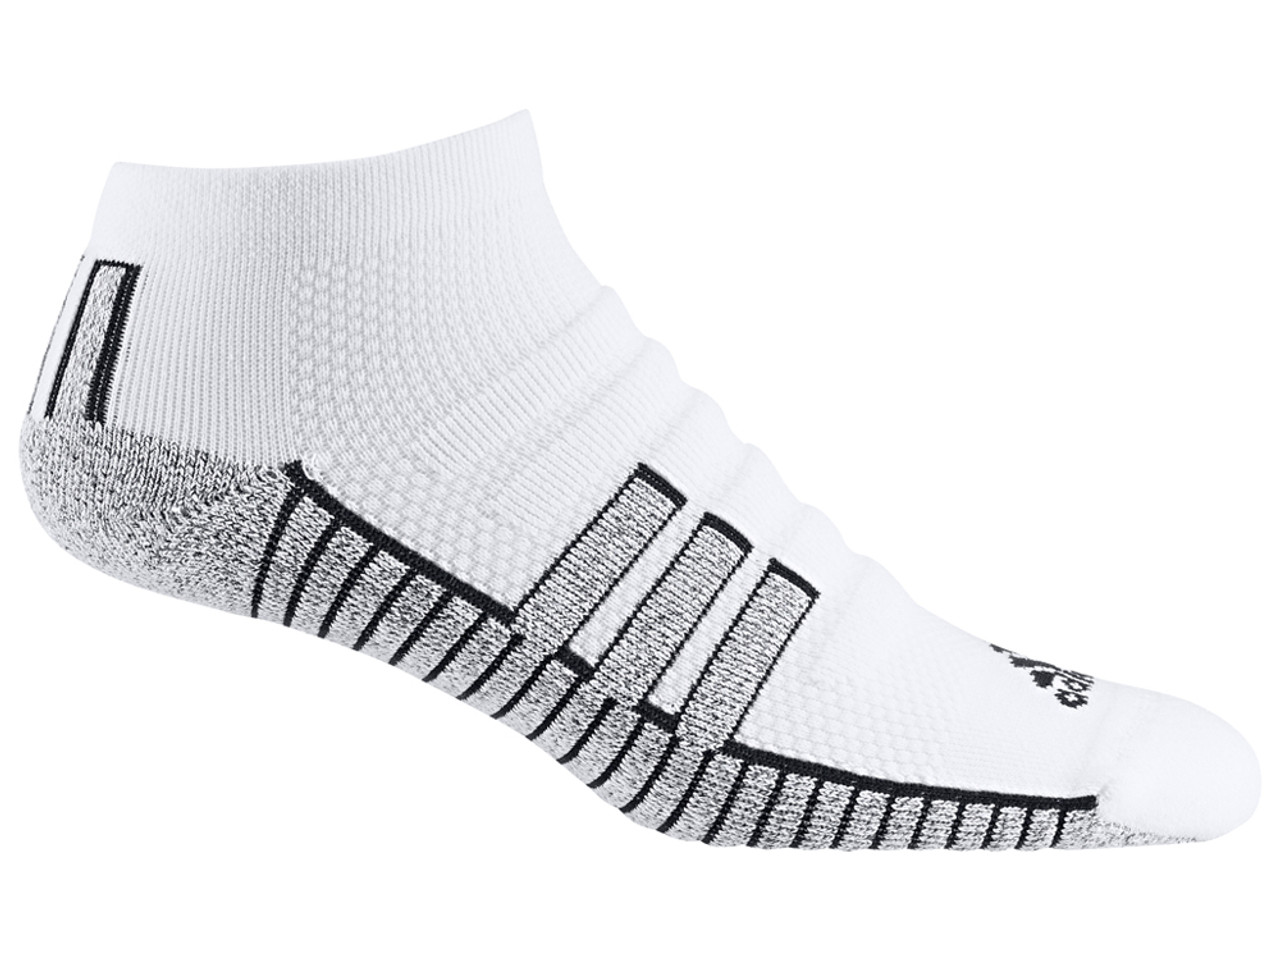 official photos 0be08 488eb Adidas Climacool Tour360 Ankle Socks - White